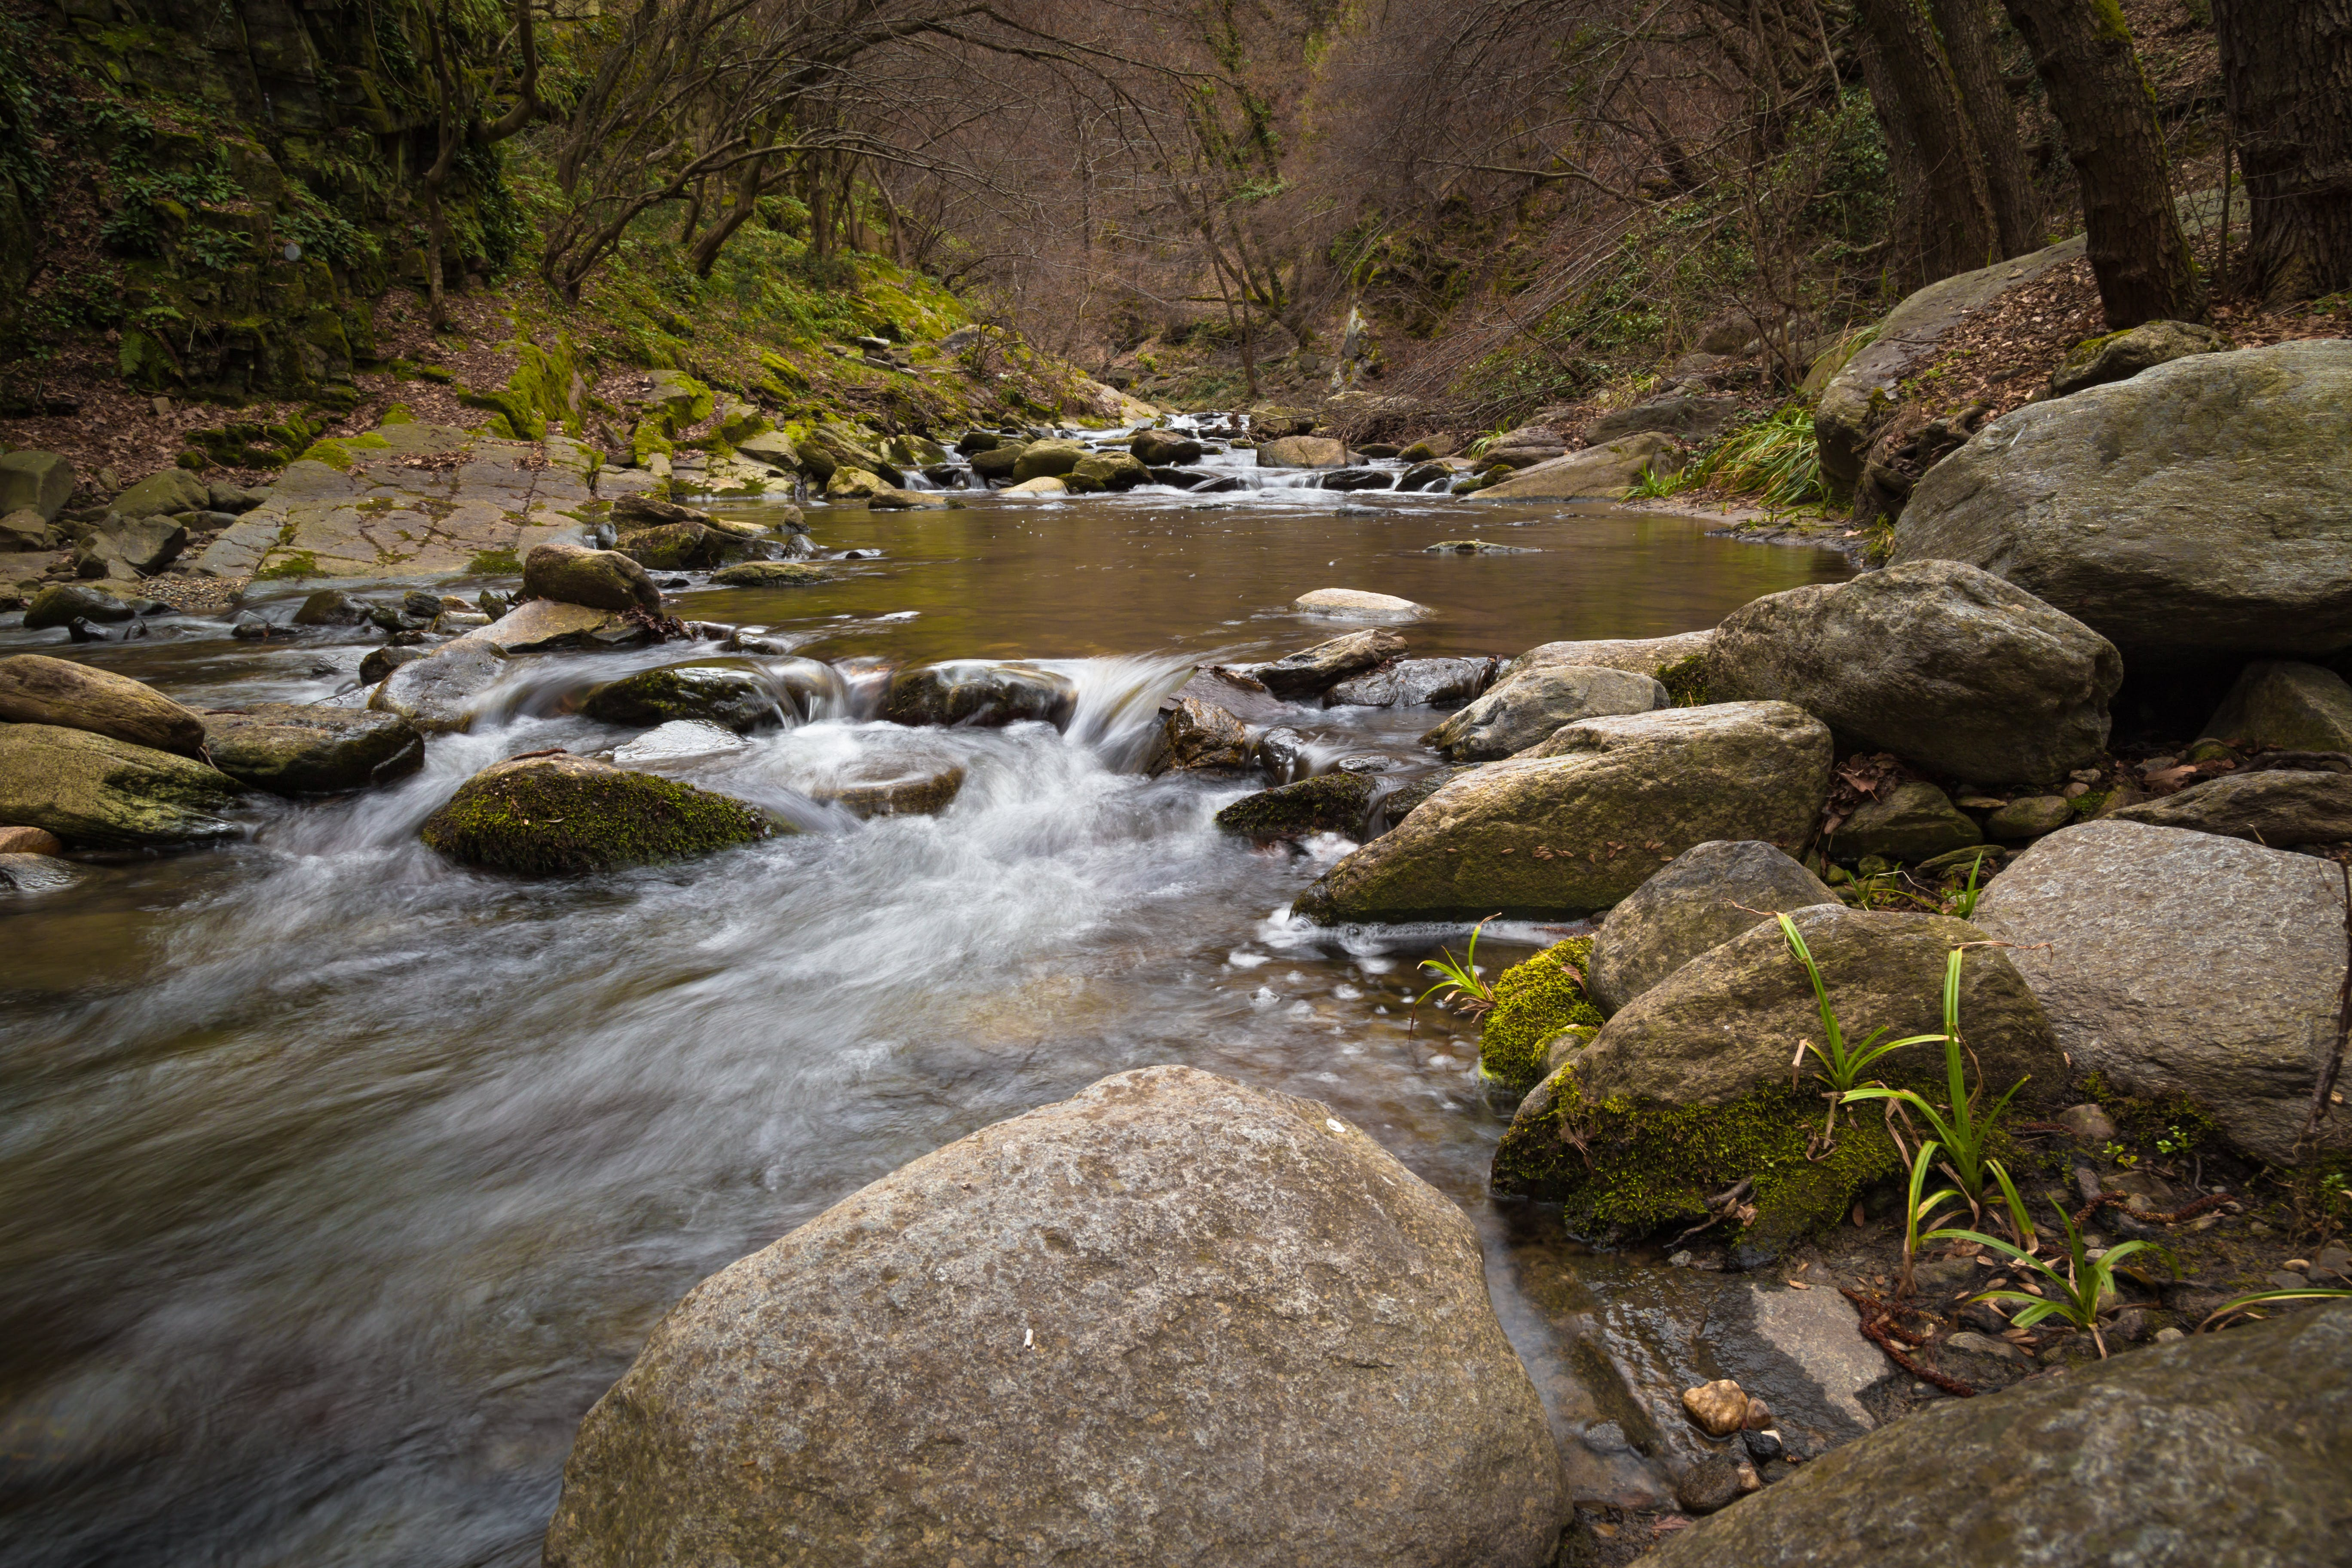 Raging River Surrounded by Stones